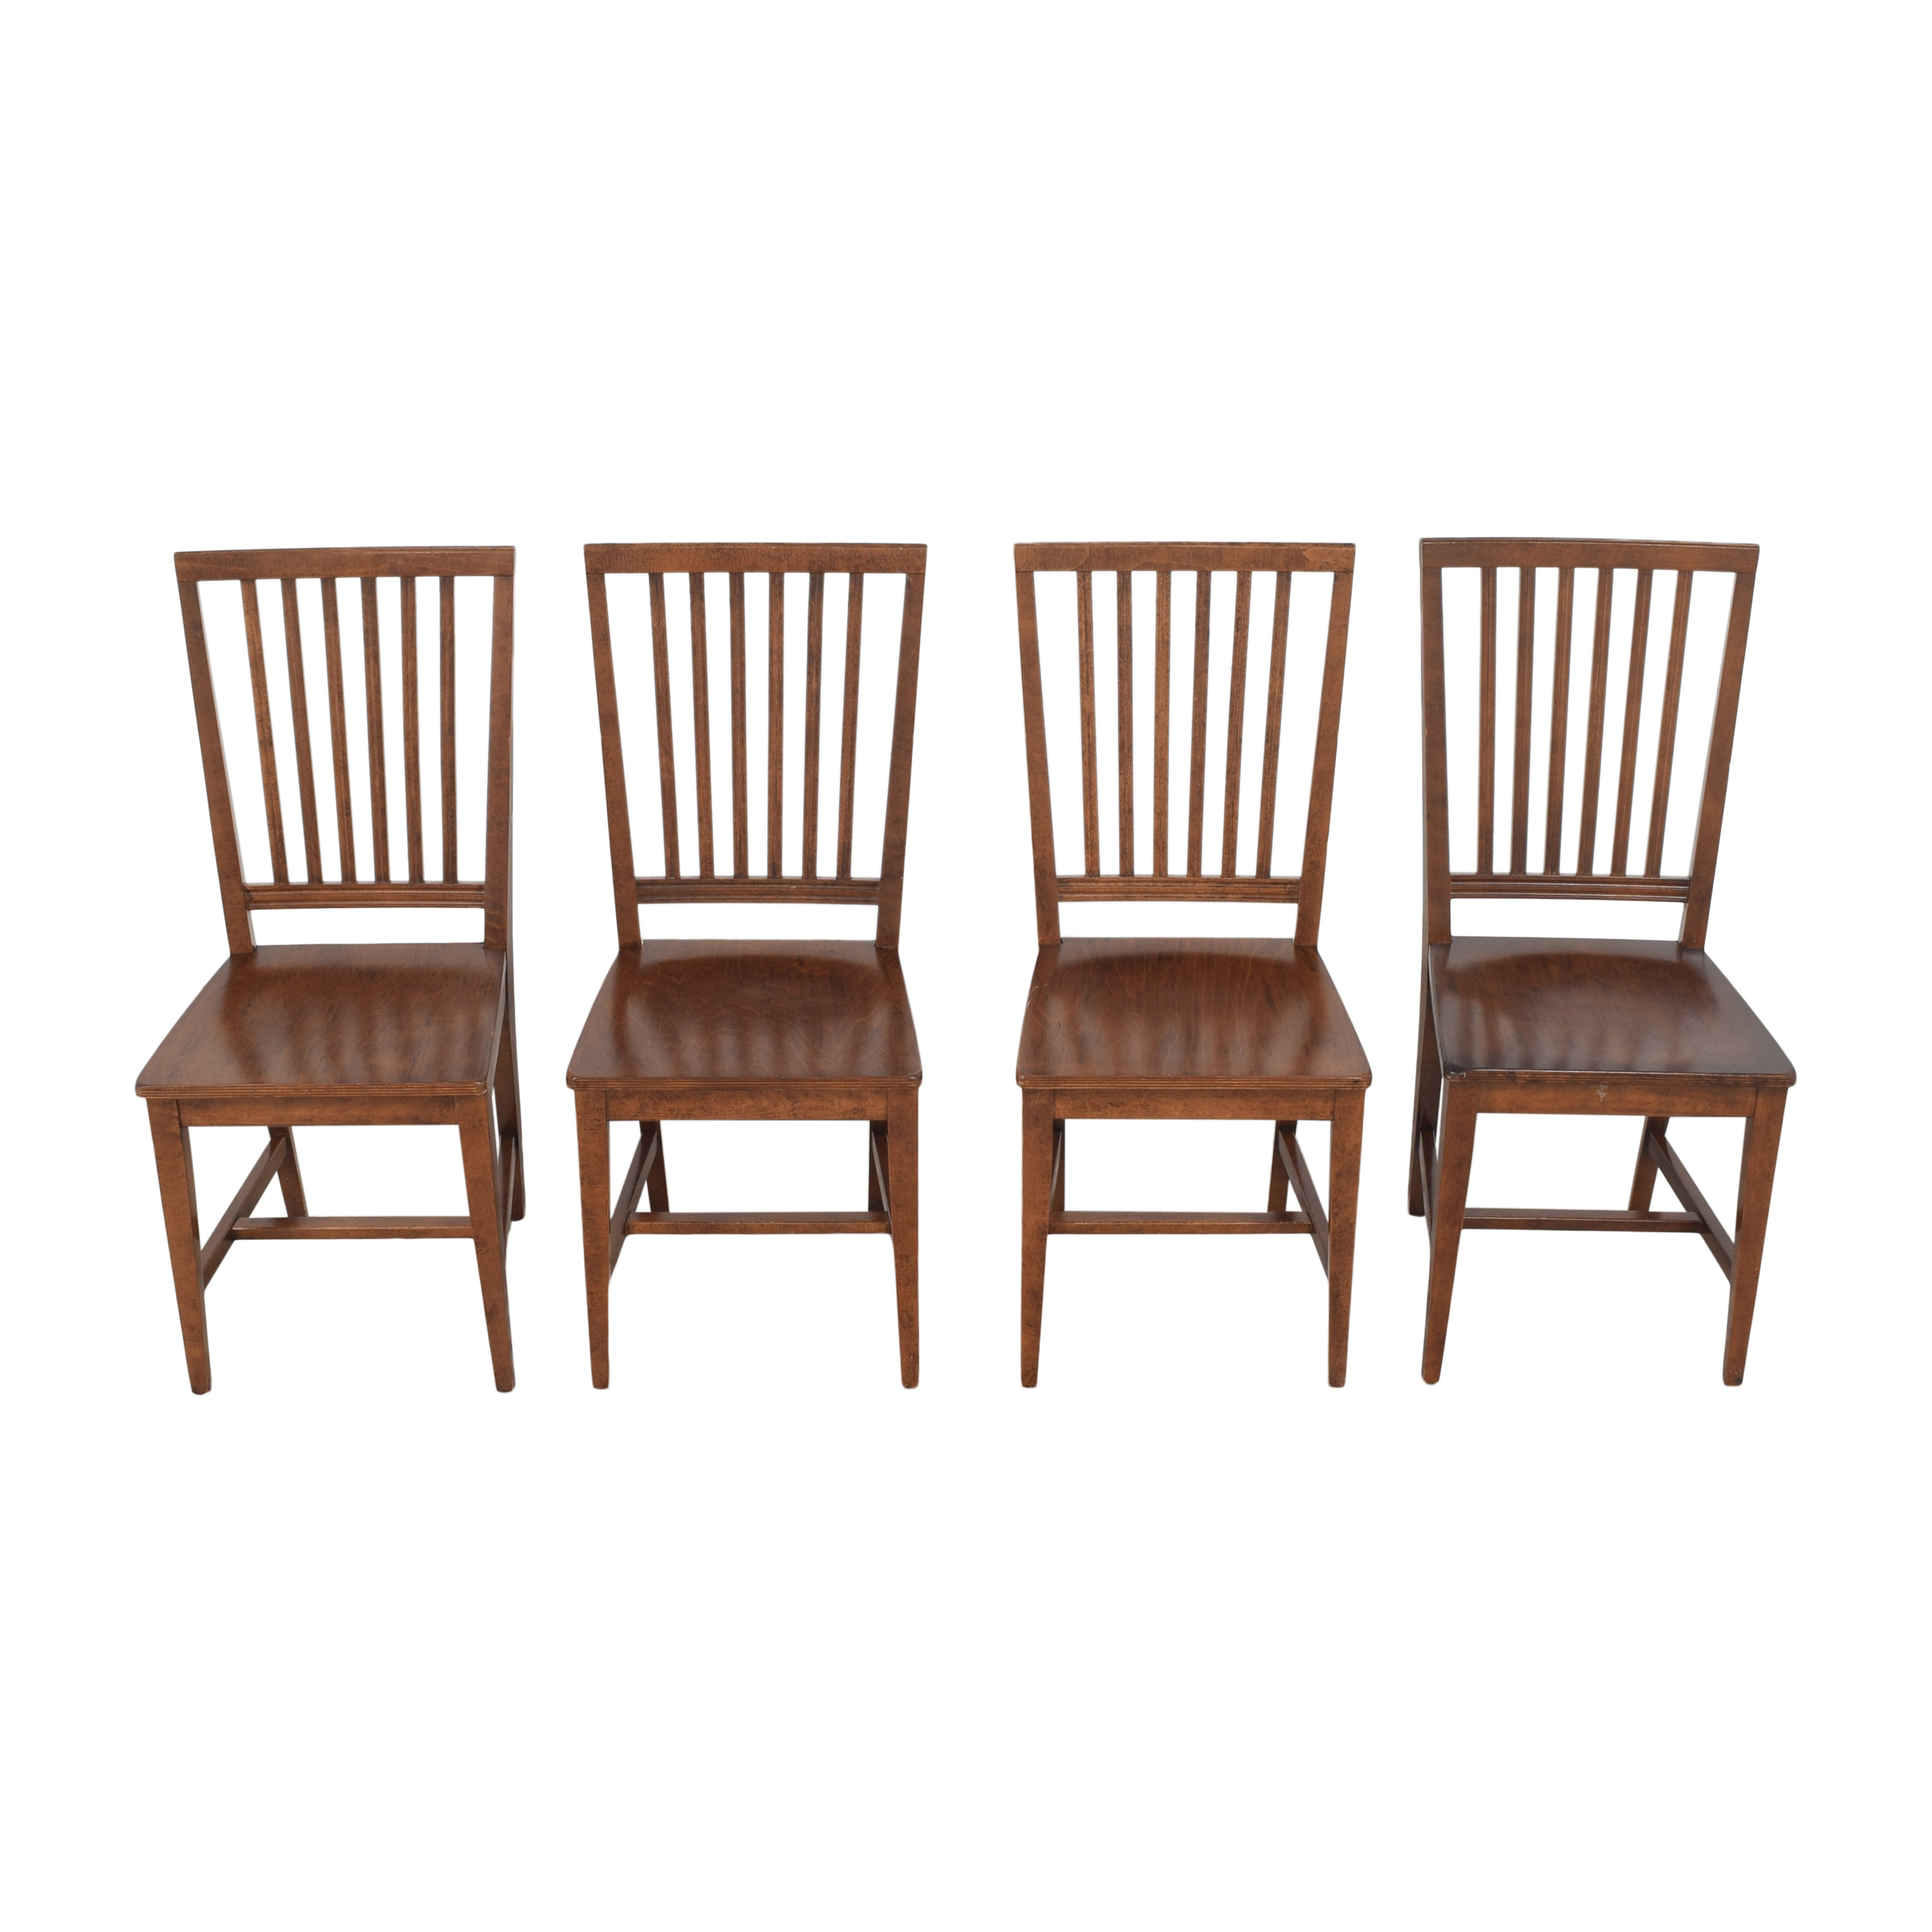 Crate & Barrel Village Nero Noche Dining Chairs / Dining Chairs